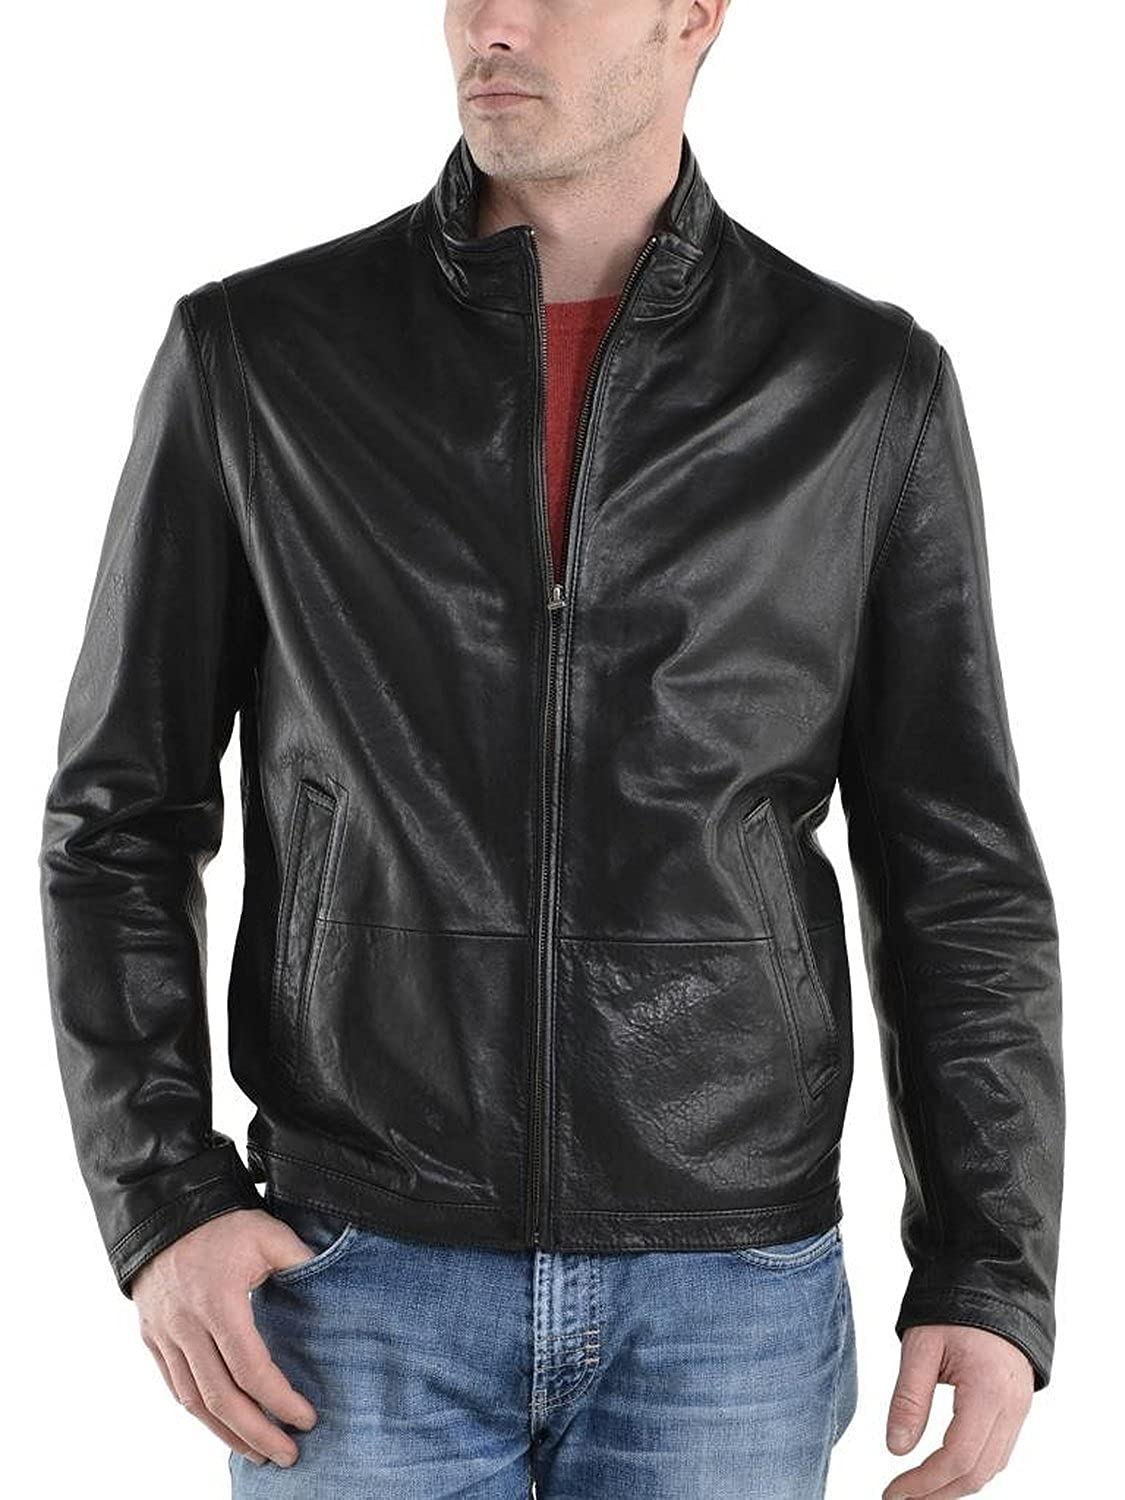 Laverapelle Men's Cow Skin Real Leather jacket Black - 1510359